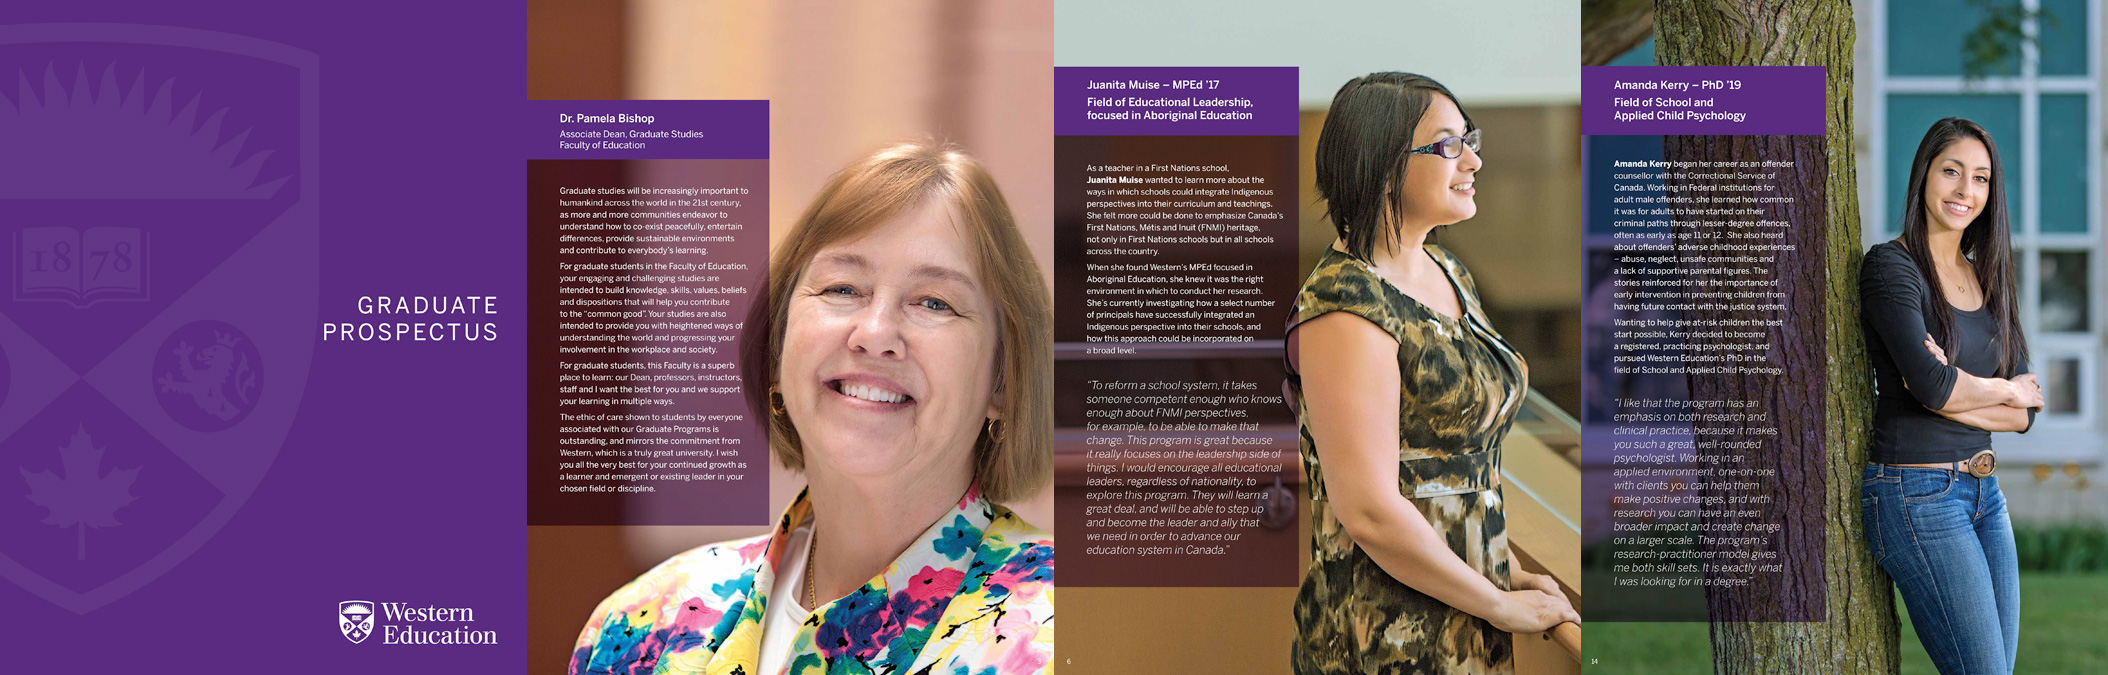 UWO Faculty of Education Graduate Prospectus